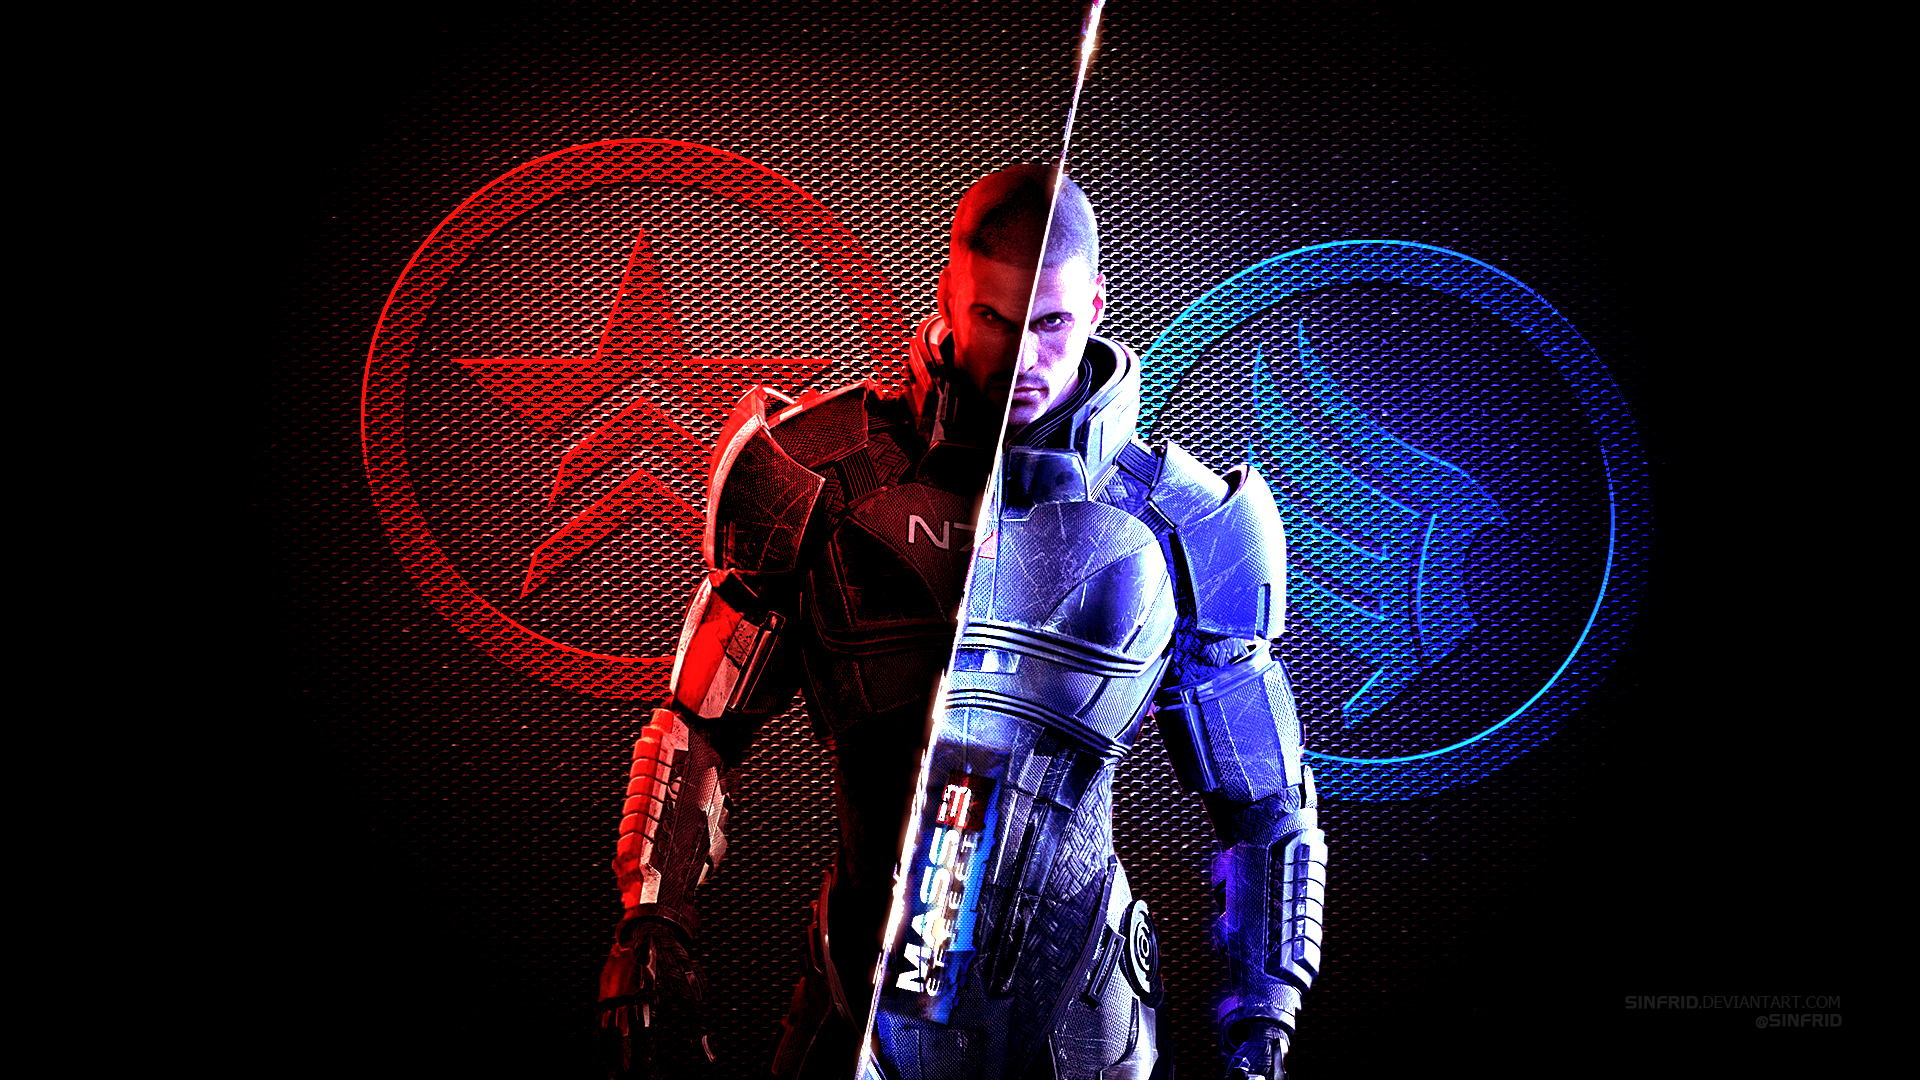 Mass Effect 3 Wallpaper 01 By Sinfrid On Deviantart